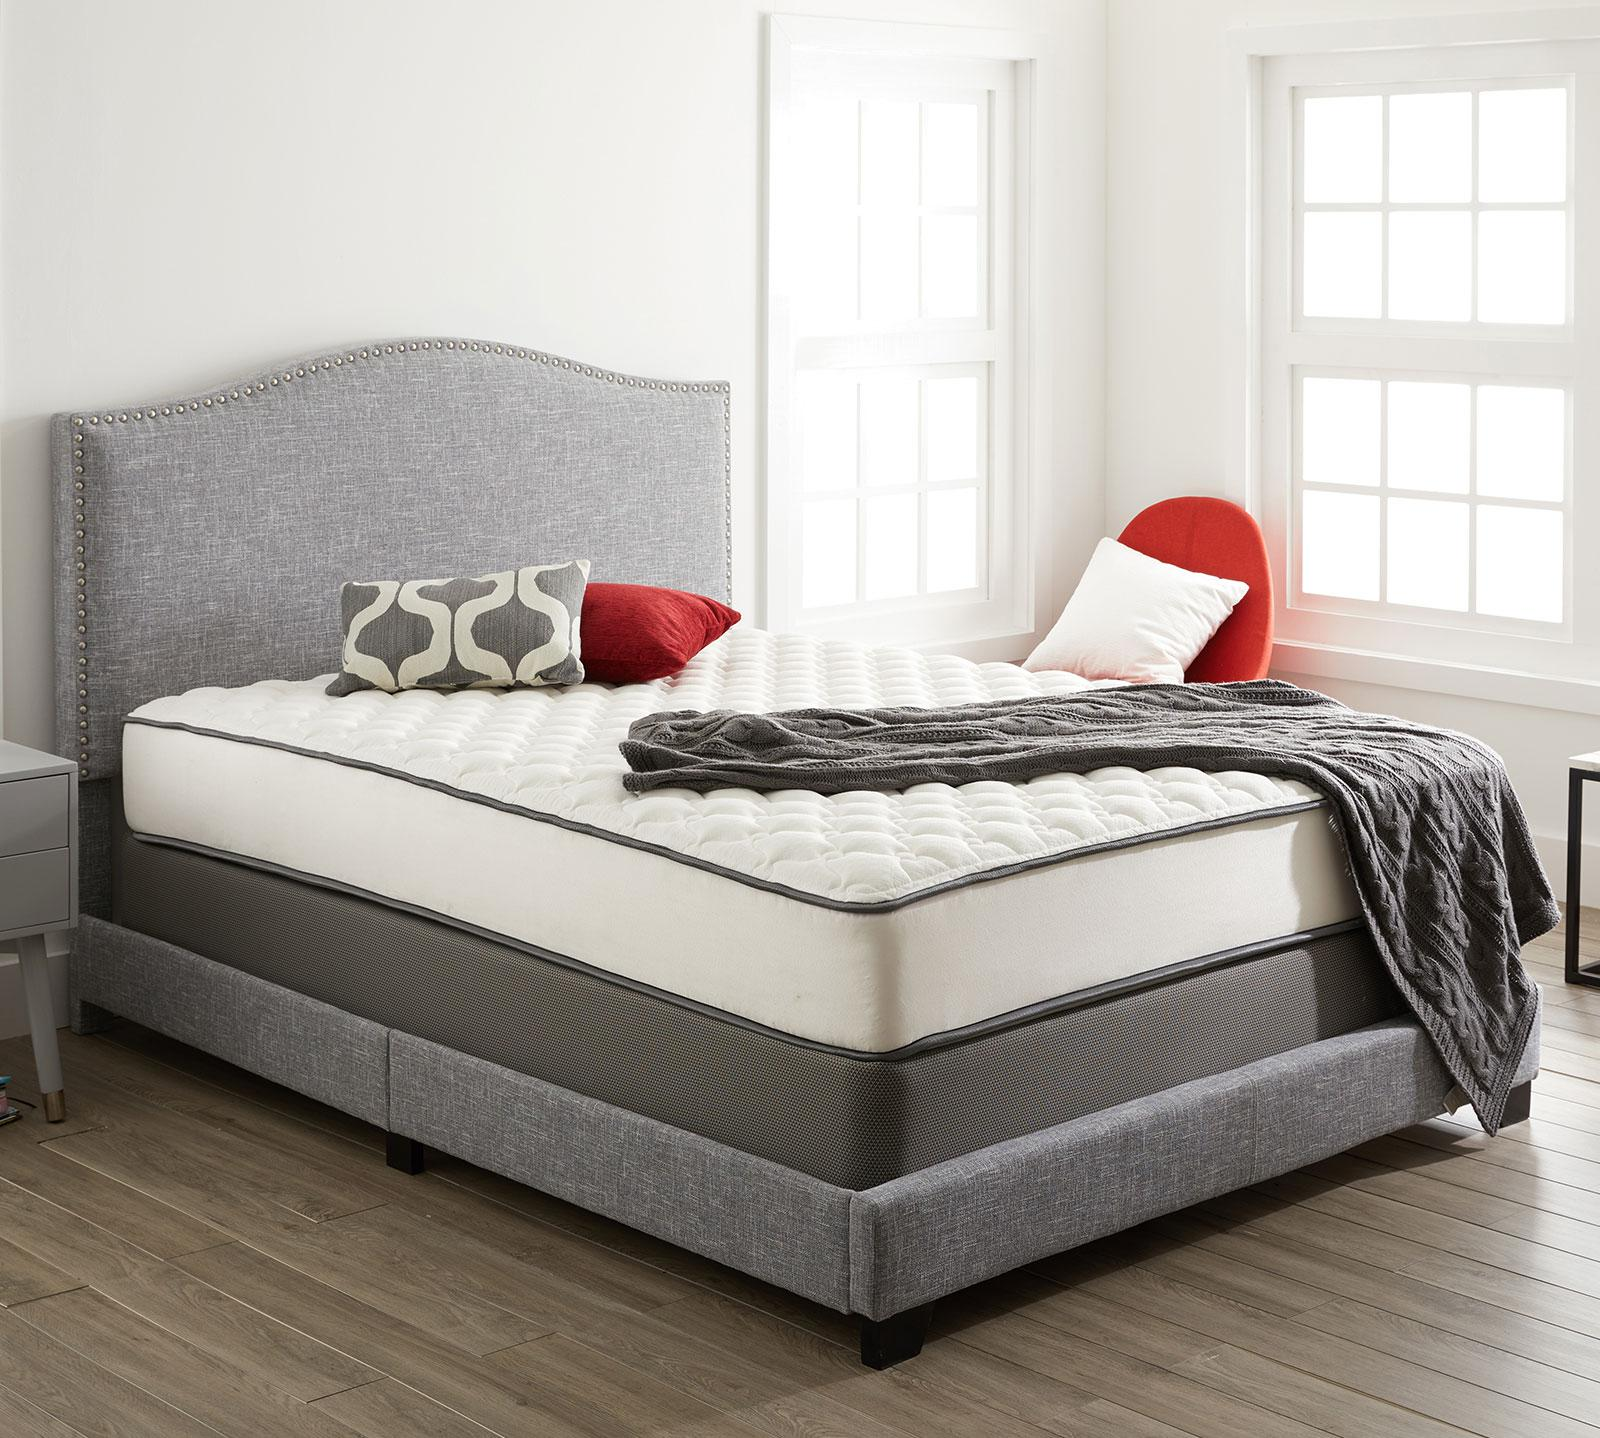 mattresses full gel costco novaform recipename venta imageservice bella memory mattress bed profileid foam imageid